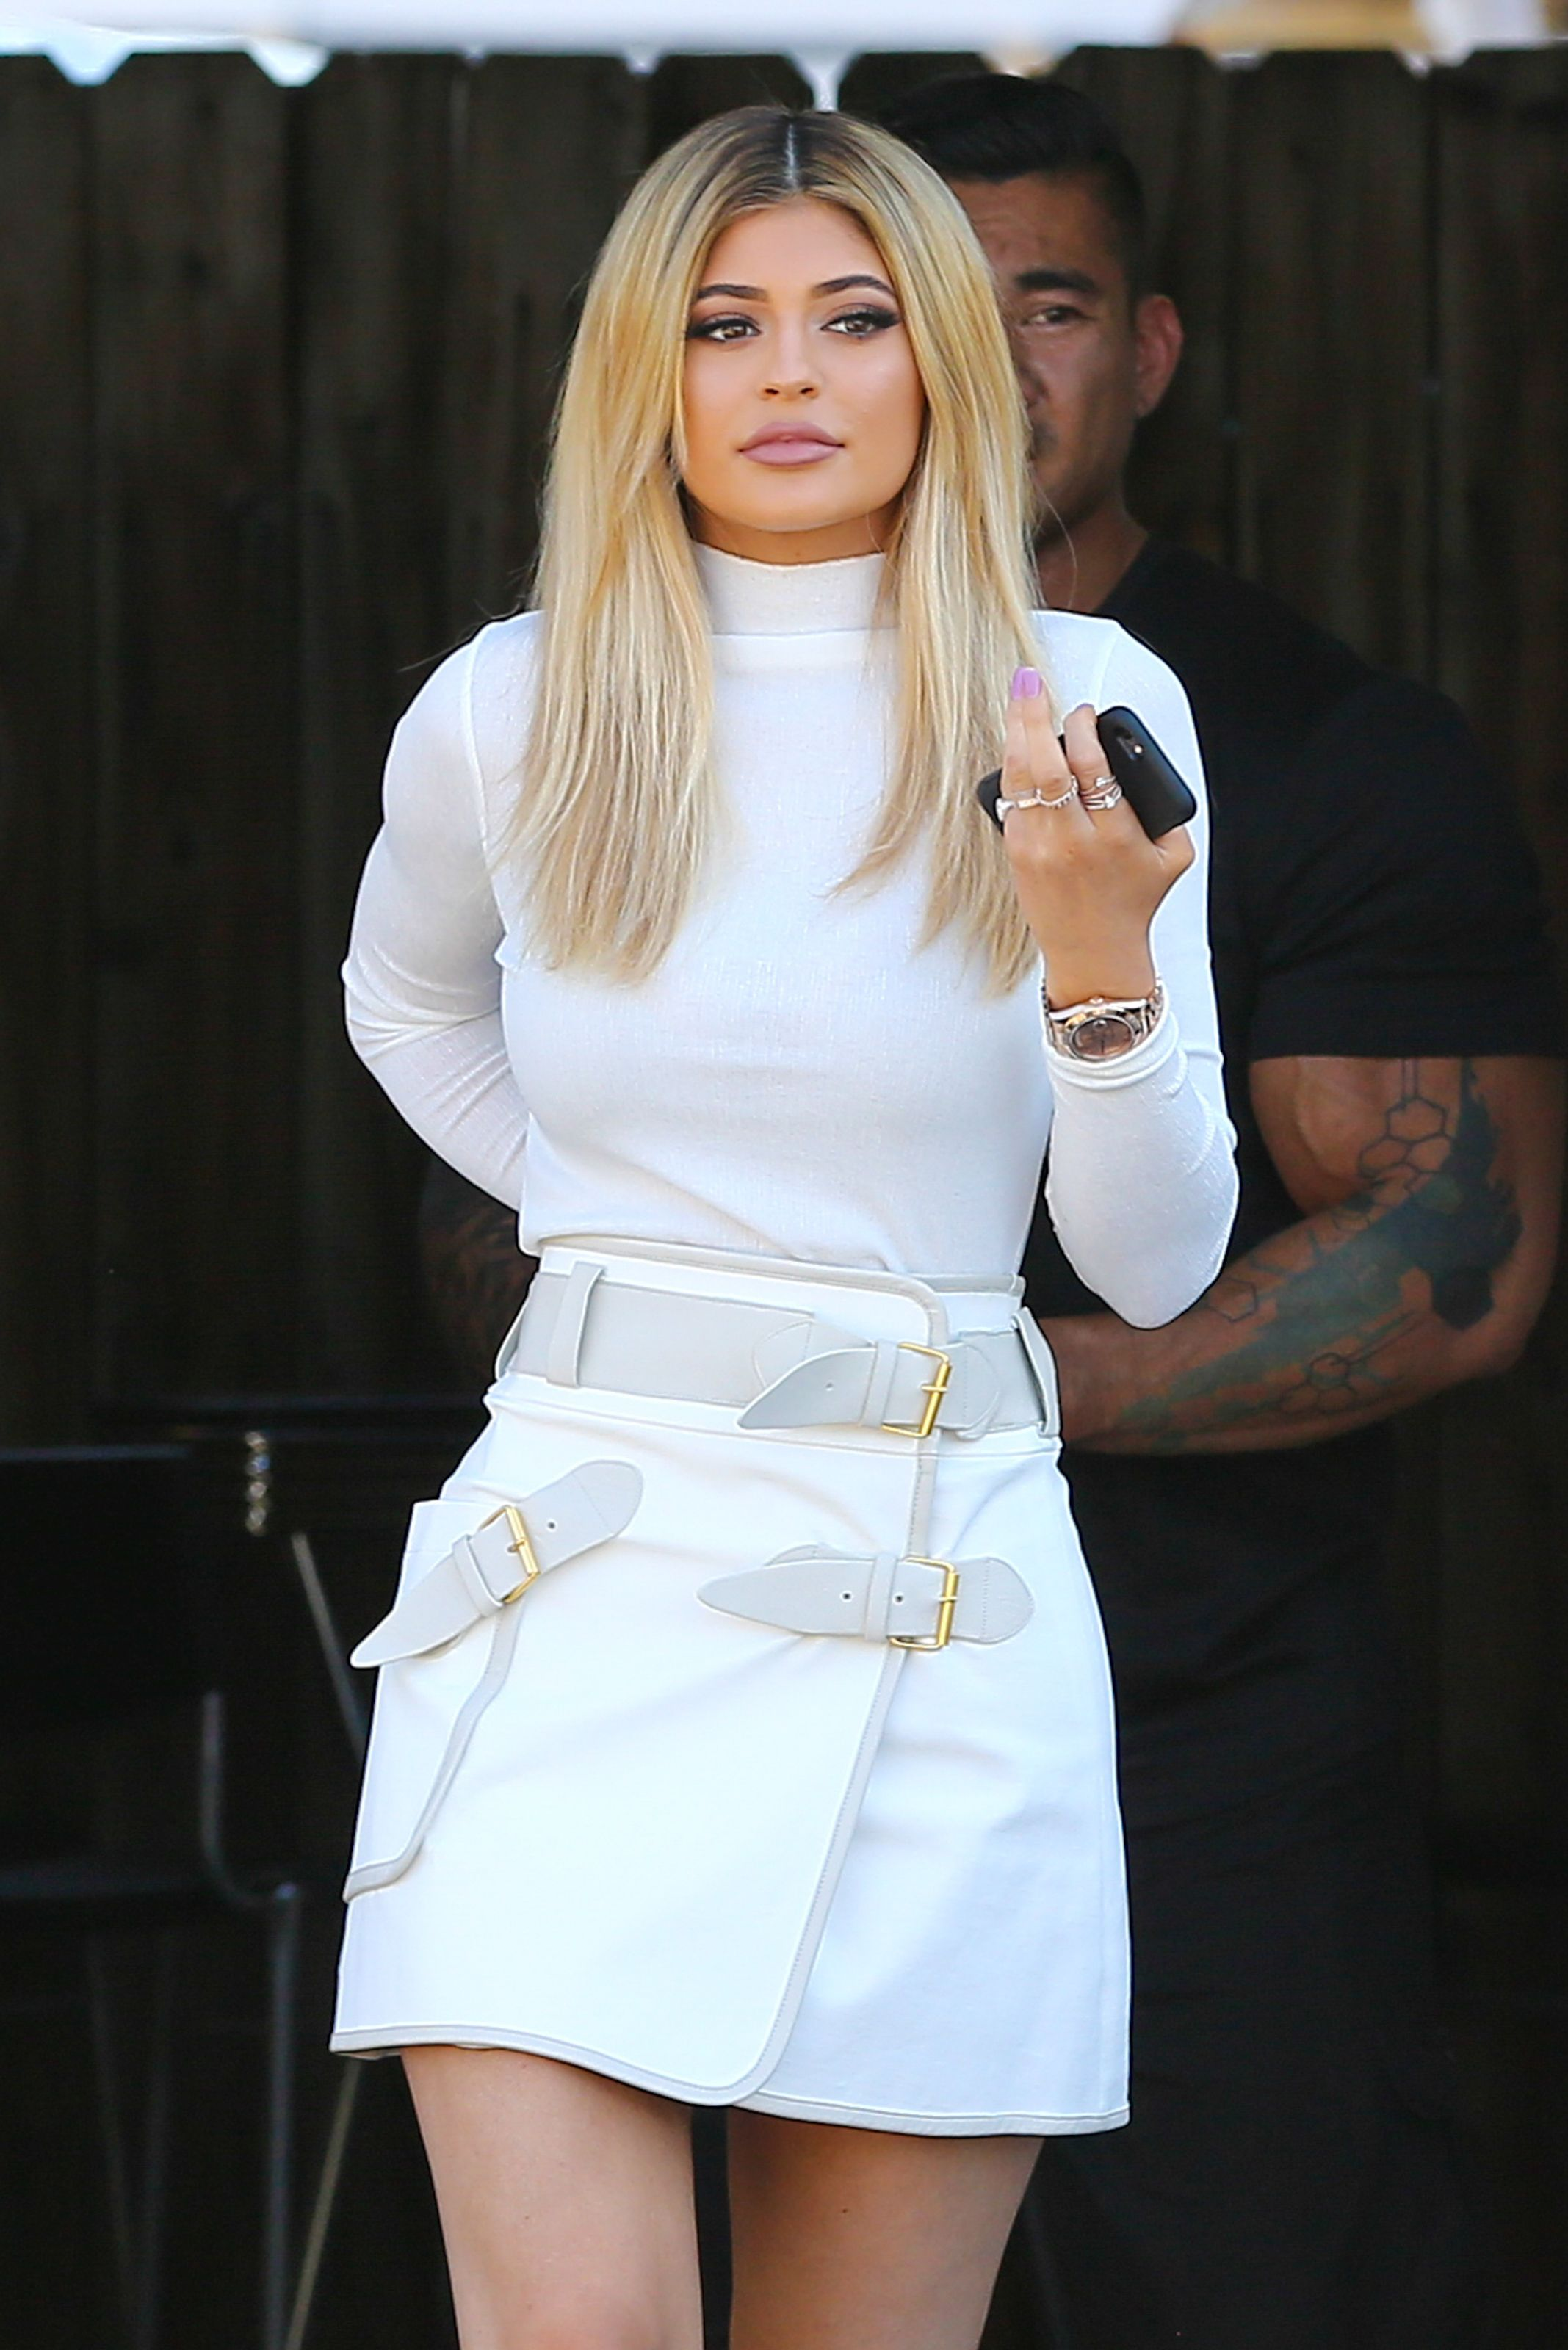 Kylie Jenner Sports All White Outfit After Labor Day